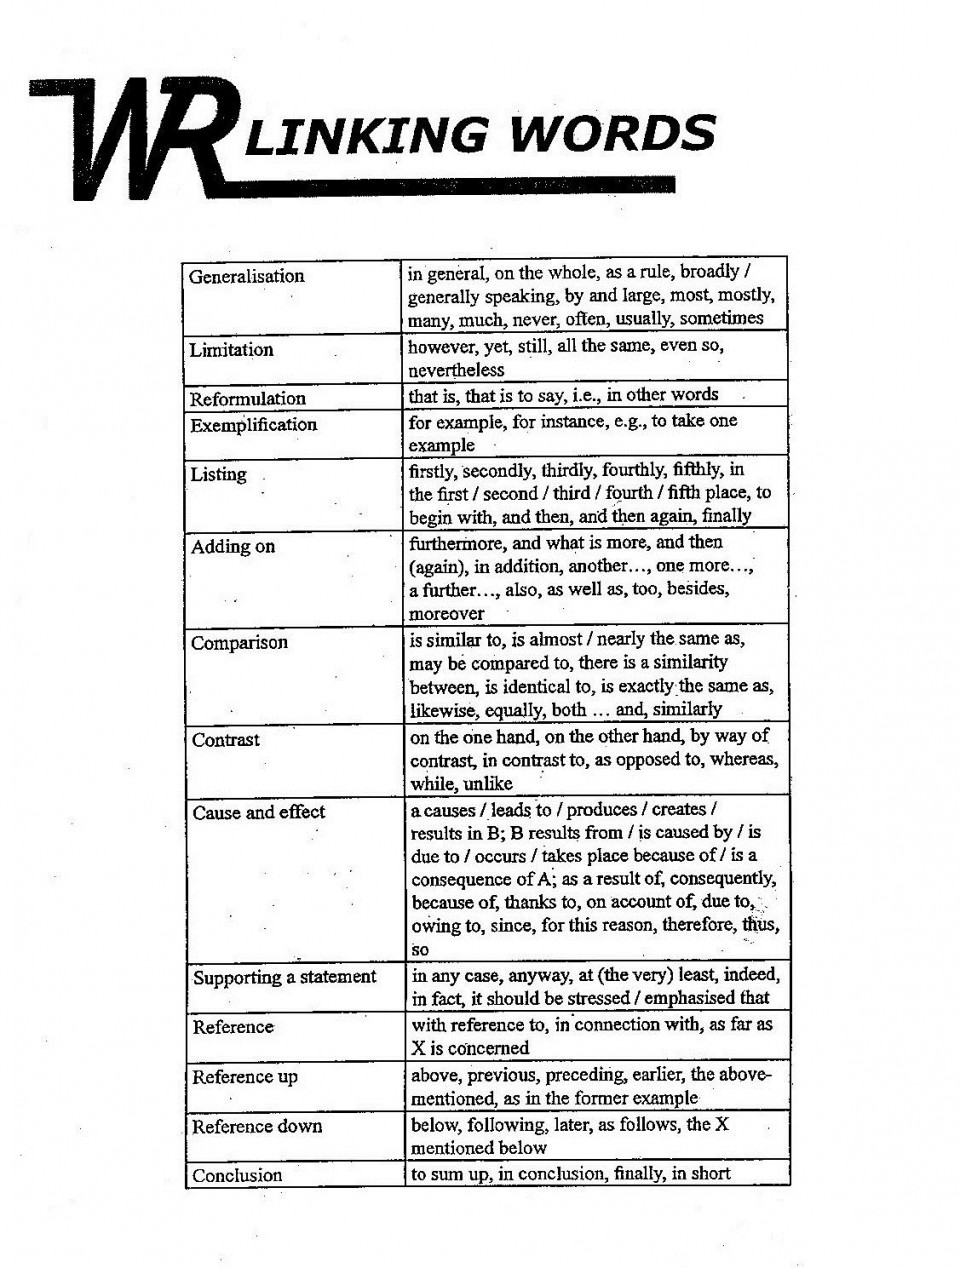 003 Essay Example Connecting Words For Essays Greed French Paragraph On To Start Conclusion In An Stmlk Begin Persuasive The First Body Argumentative Off Sentence Incredible Academic Ielts 960